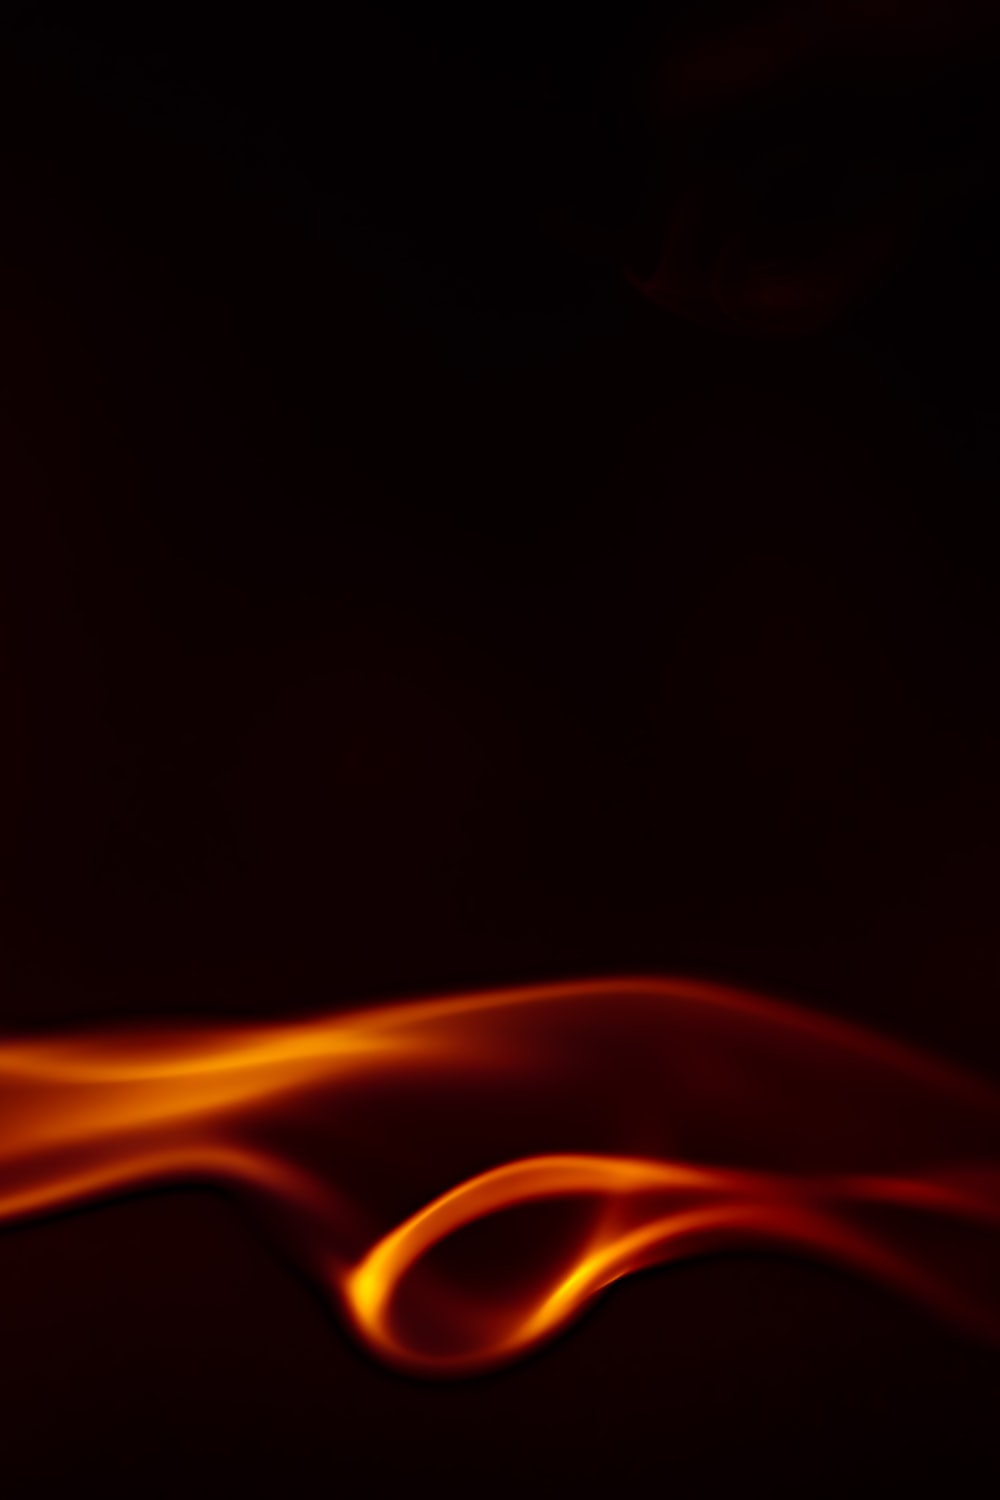 red and yellow fire illustration